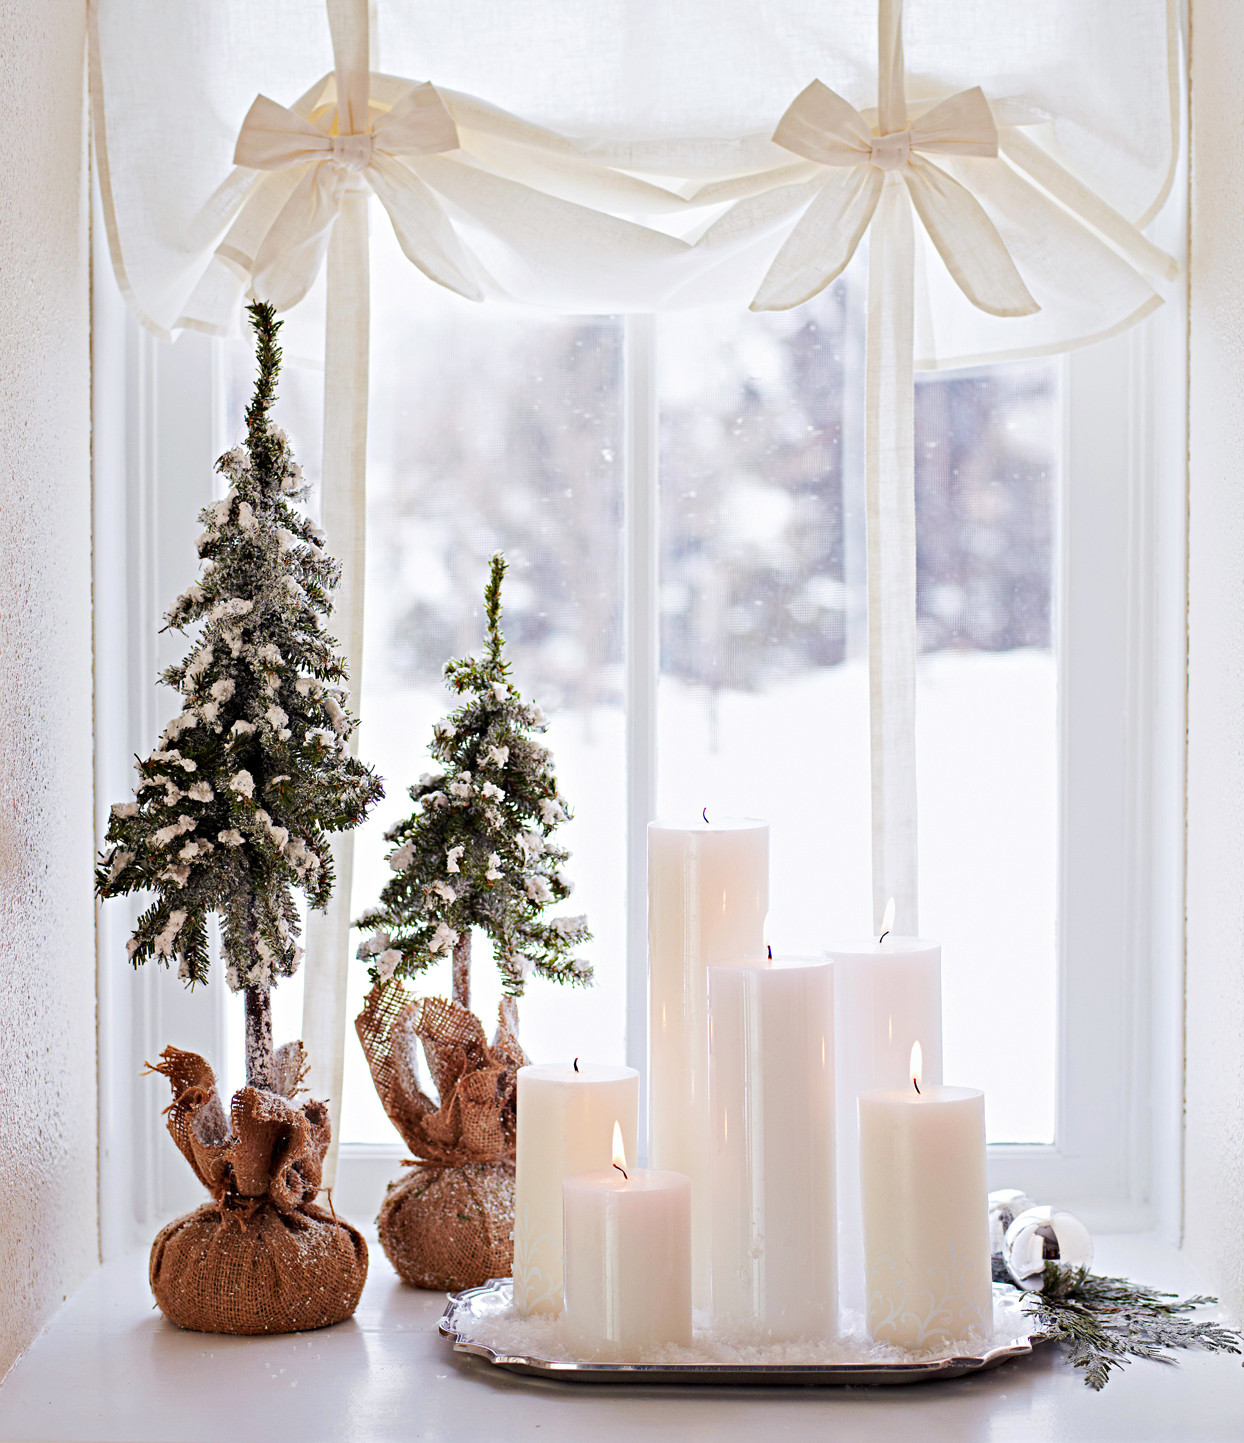 window sill Set Up Your Holiday Décor